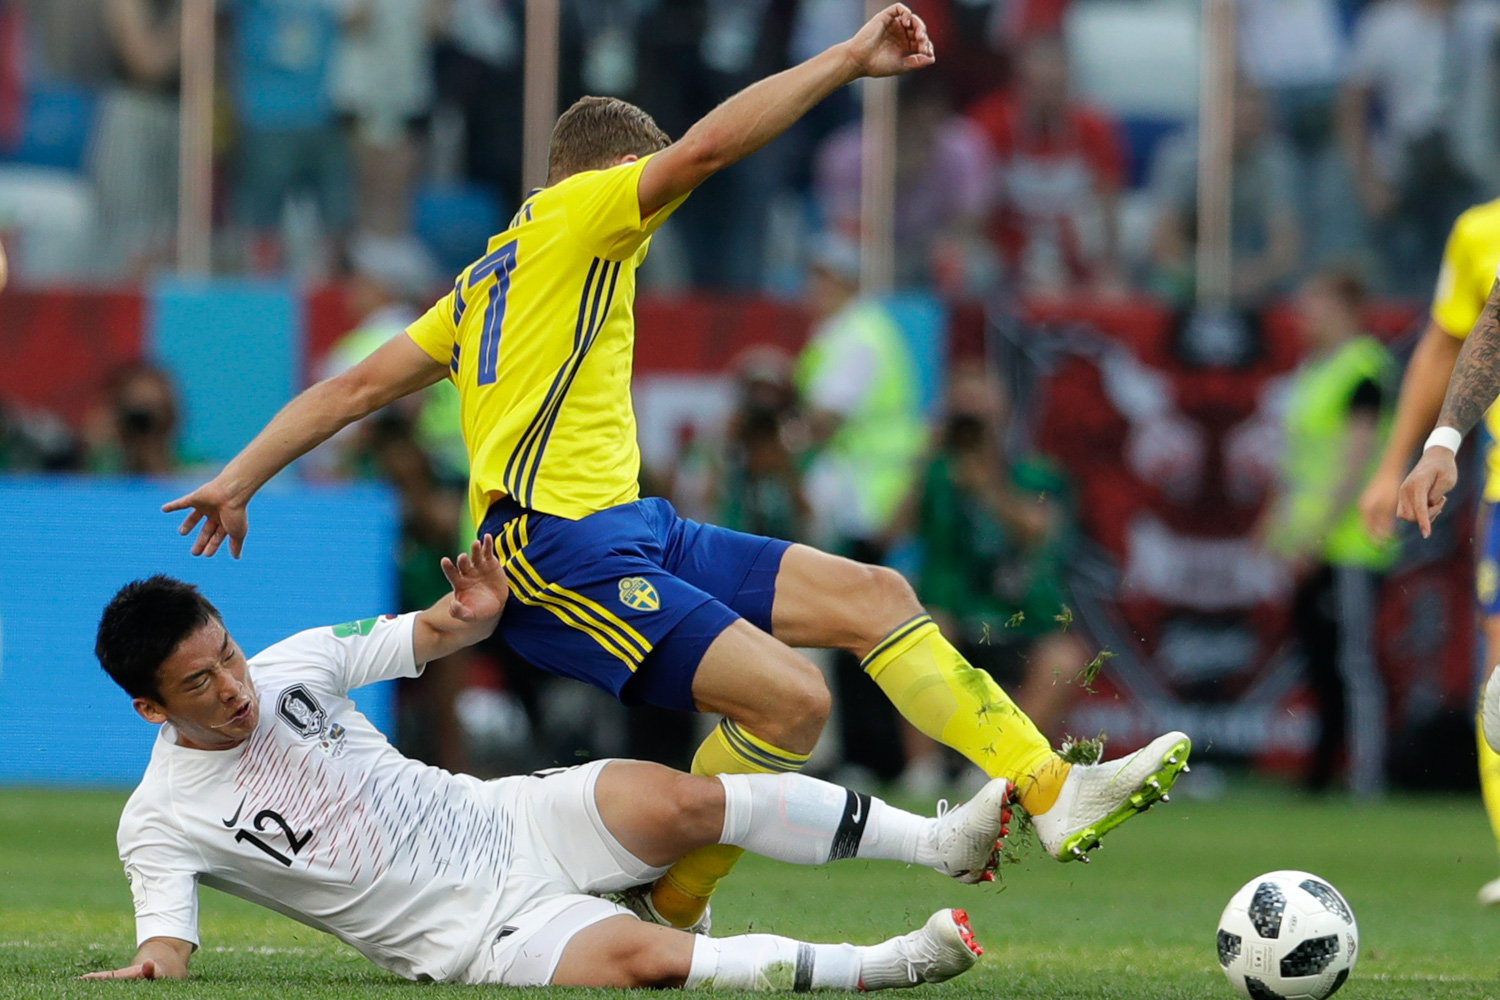 "<div class=""meta image-caption""><div class=""origin-logo origin-image none""><span>none</span></div><span class=""caption-text"">Sweden's Viktor Claesson is tackled by South Korea's Kim Min-woo during the group F match between Sweden and South Korea (Petr David Josek/AP)</span></div>"